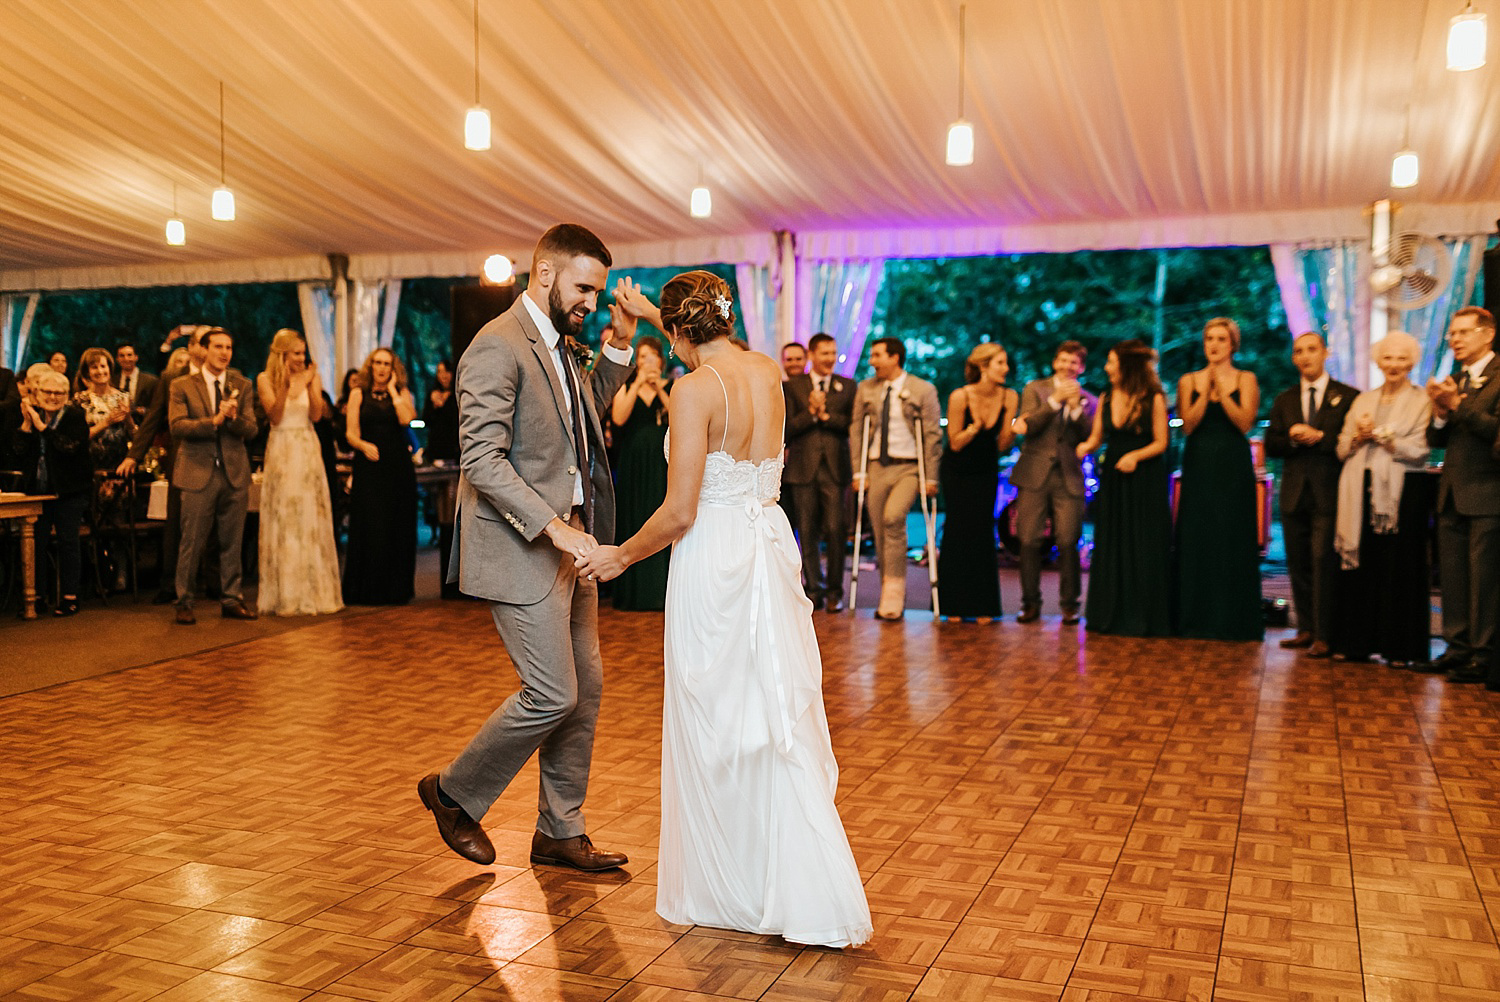 Wedding first dance at philander chase knox by danfredo photos + films